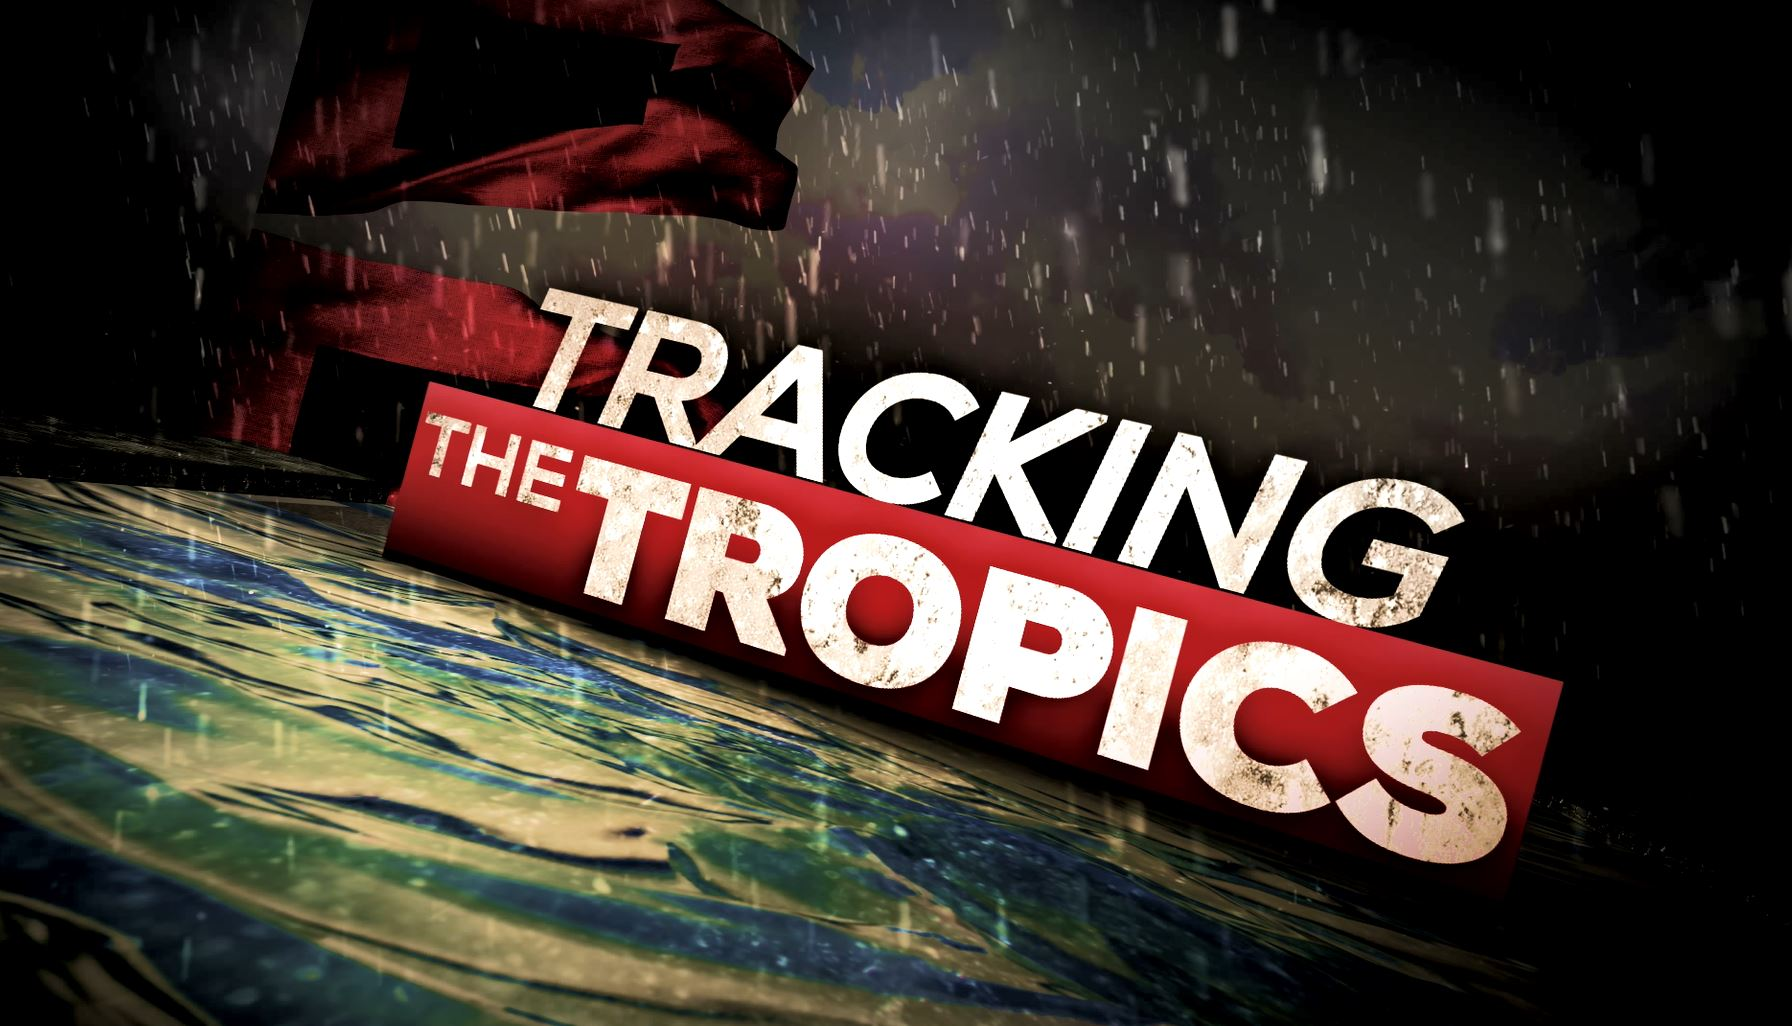 tracking the tropics story size_1560355159710.JPG.jpg